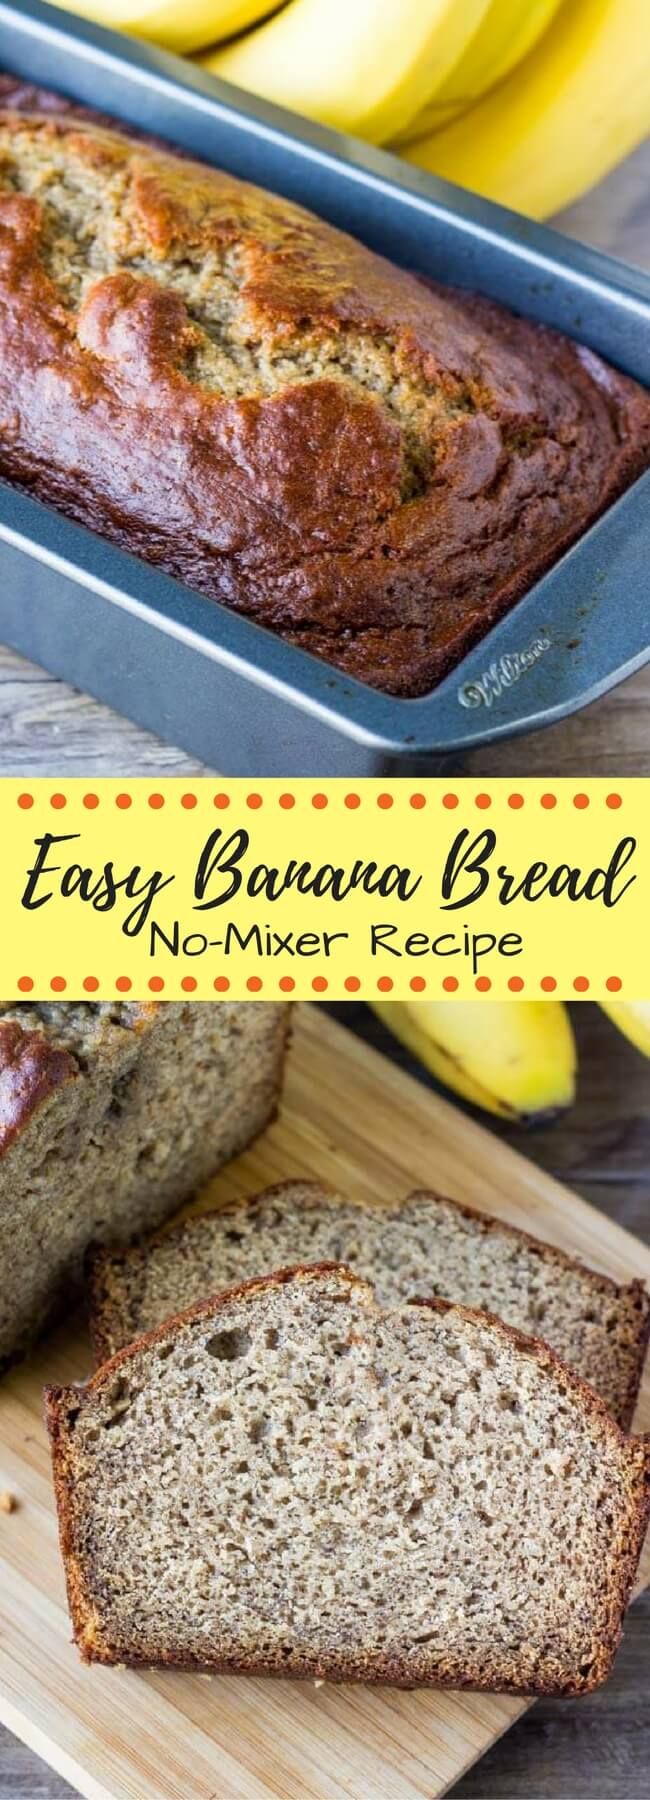 This moist banana bread is made with sour cream and packed with flavor thanks to lots of bananas, cinnamon & vanilla. You'll love this no mixer recipe.